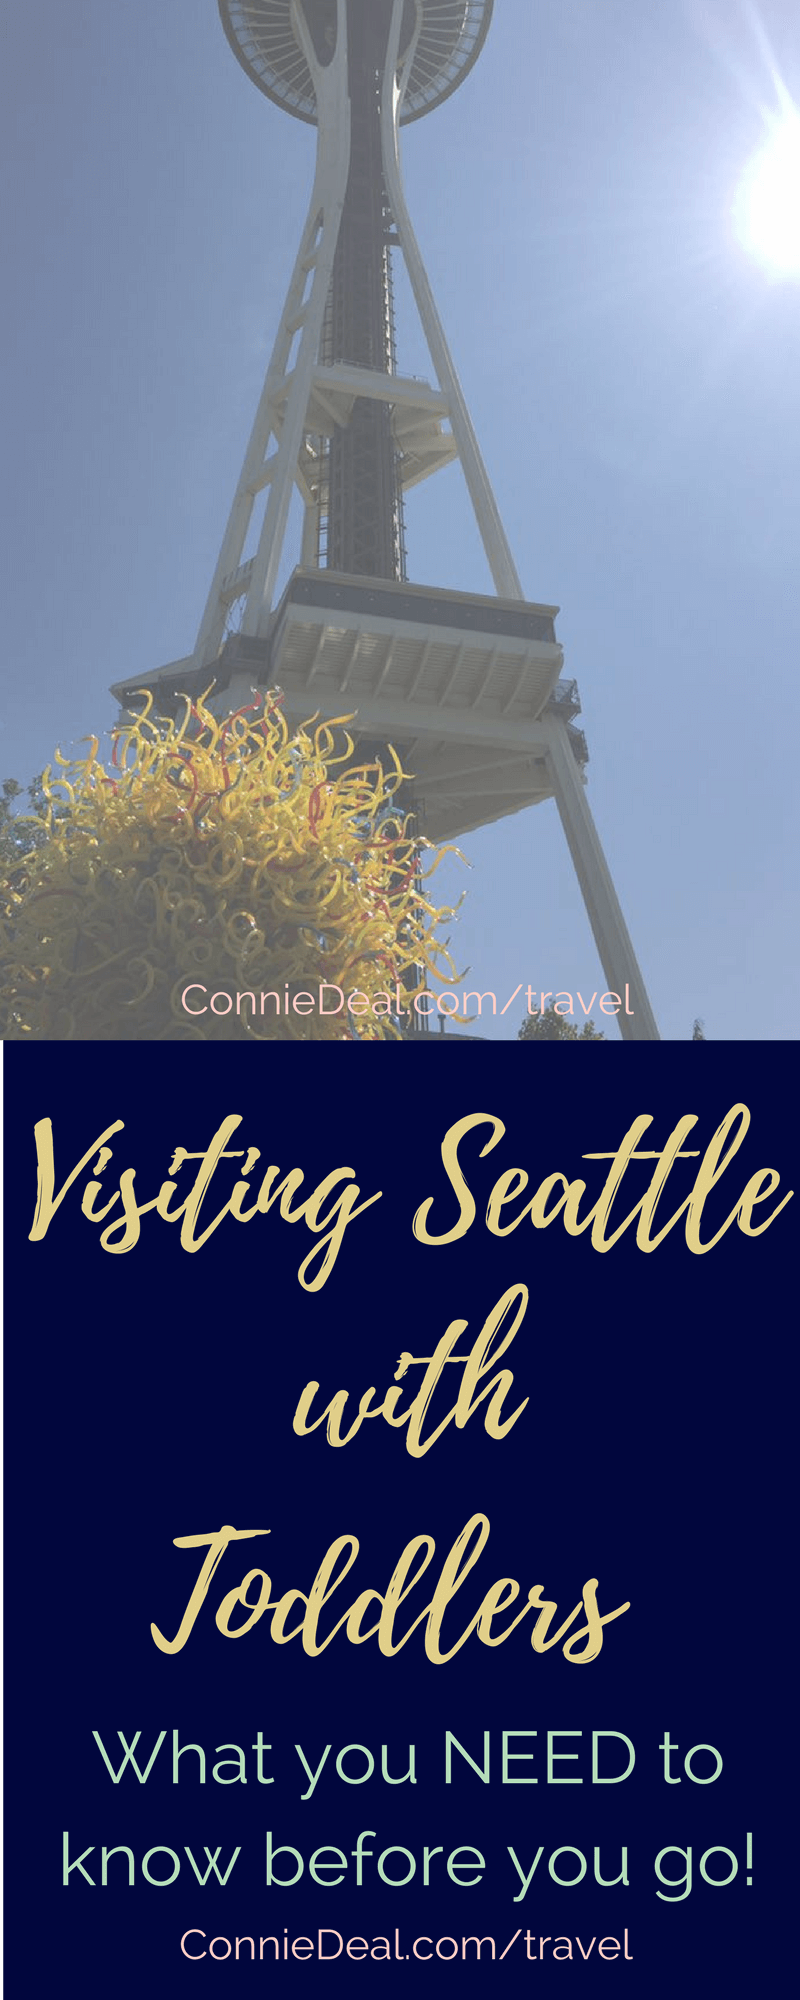 Thinking of visiting Seattle with kids? Is it doable? What are your best options? Find out in this post from a traveling mama with two toddlers! #Seattle #Seattlewithkids #sightseeing #travel #familyvacation #SpaceNeedle